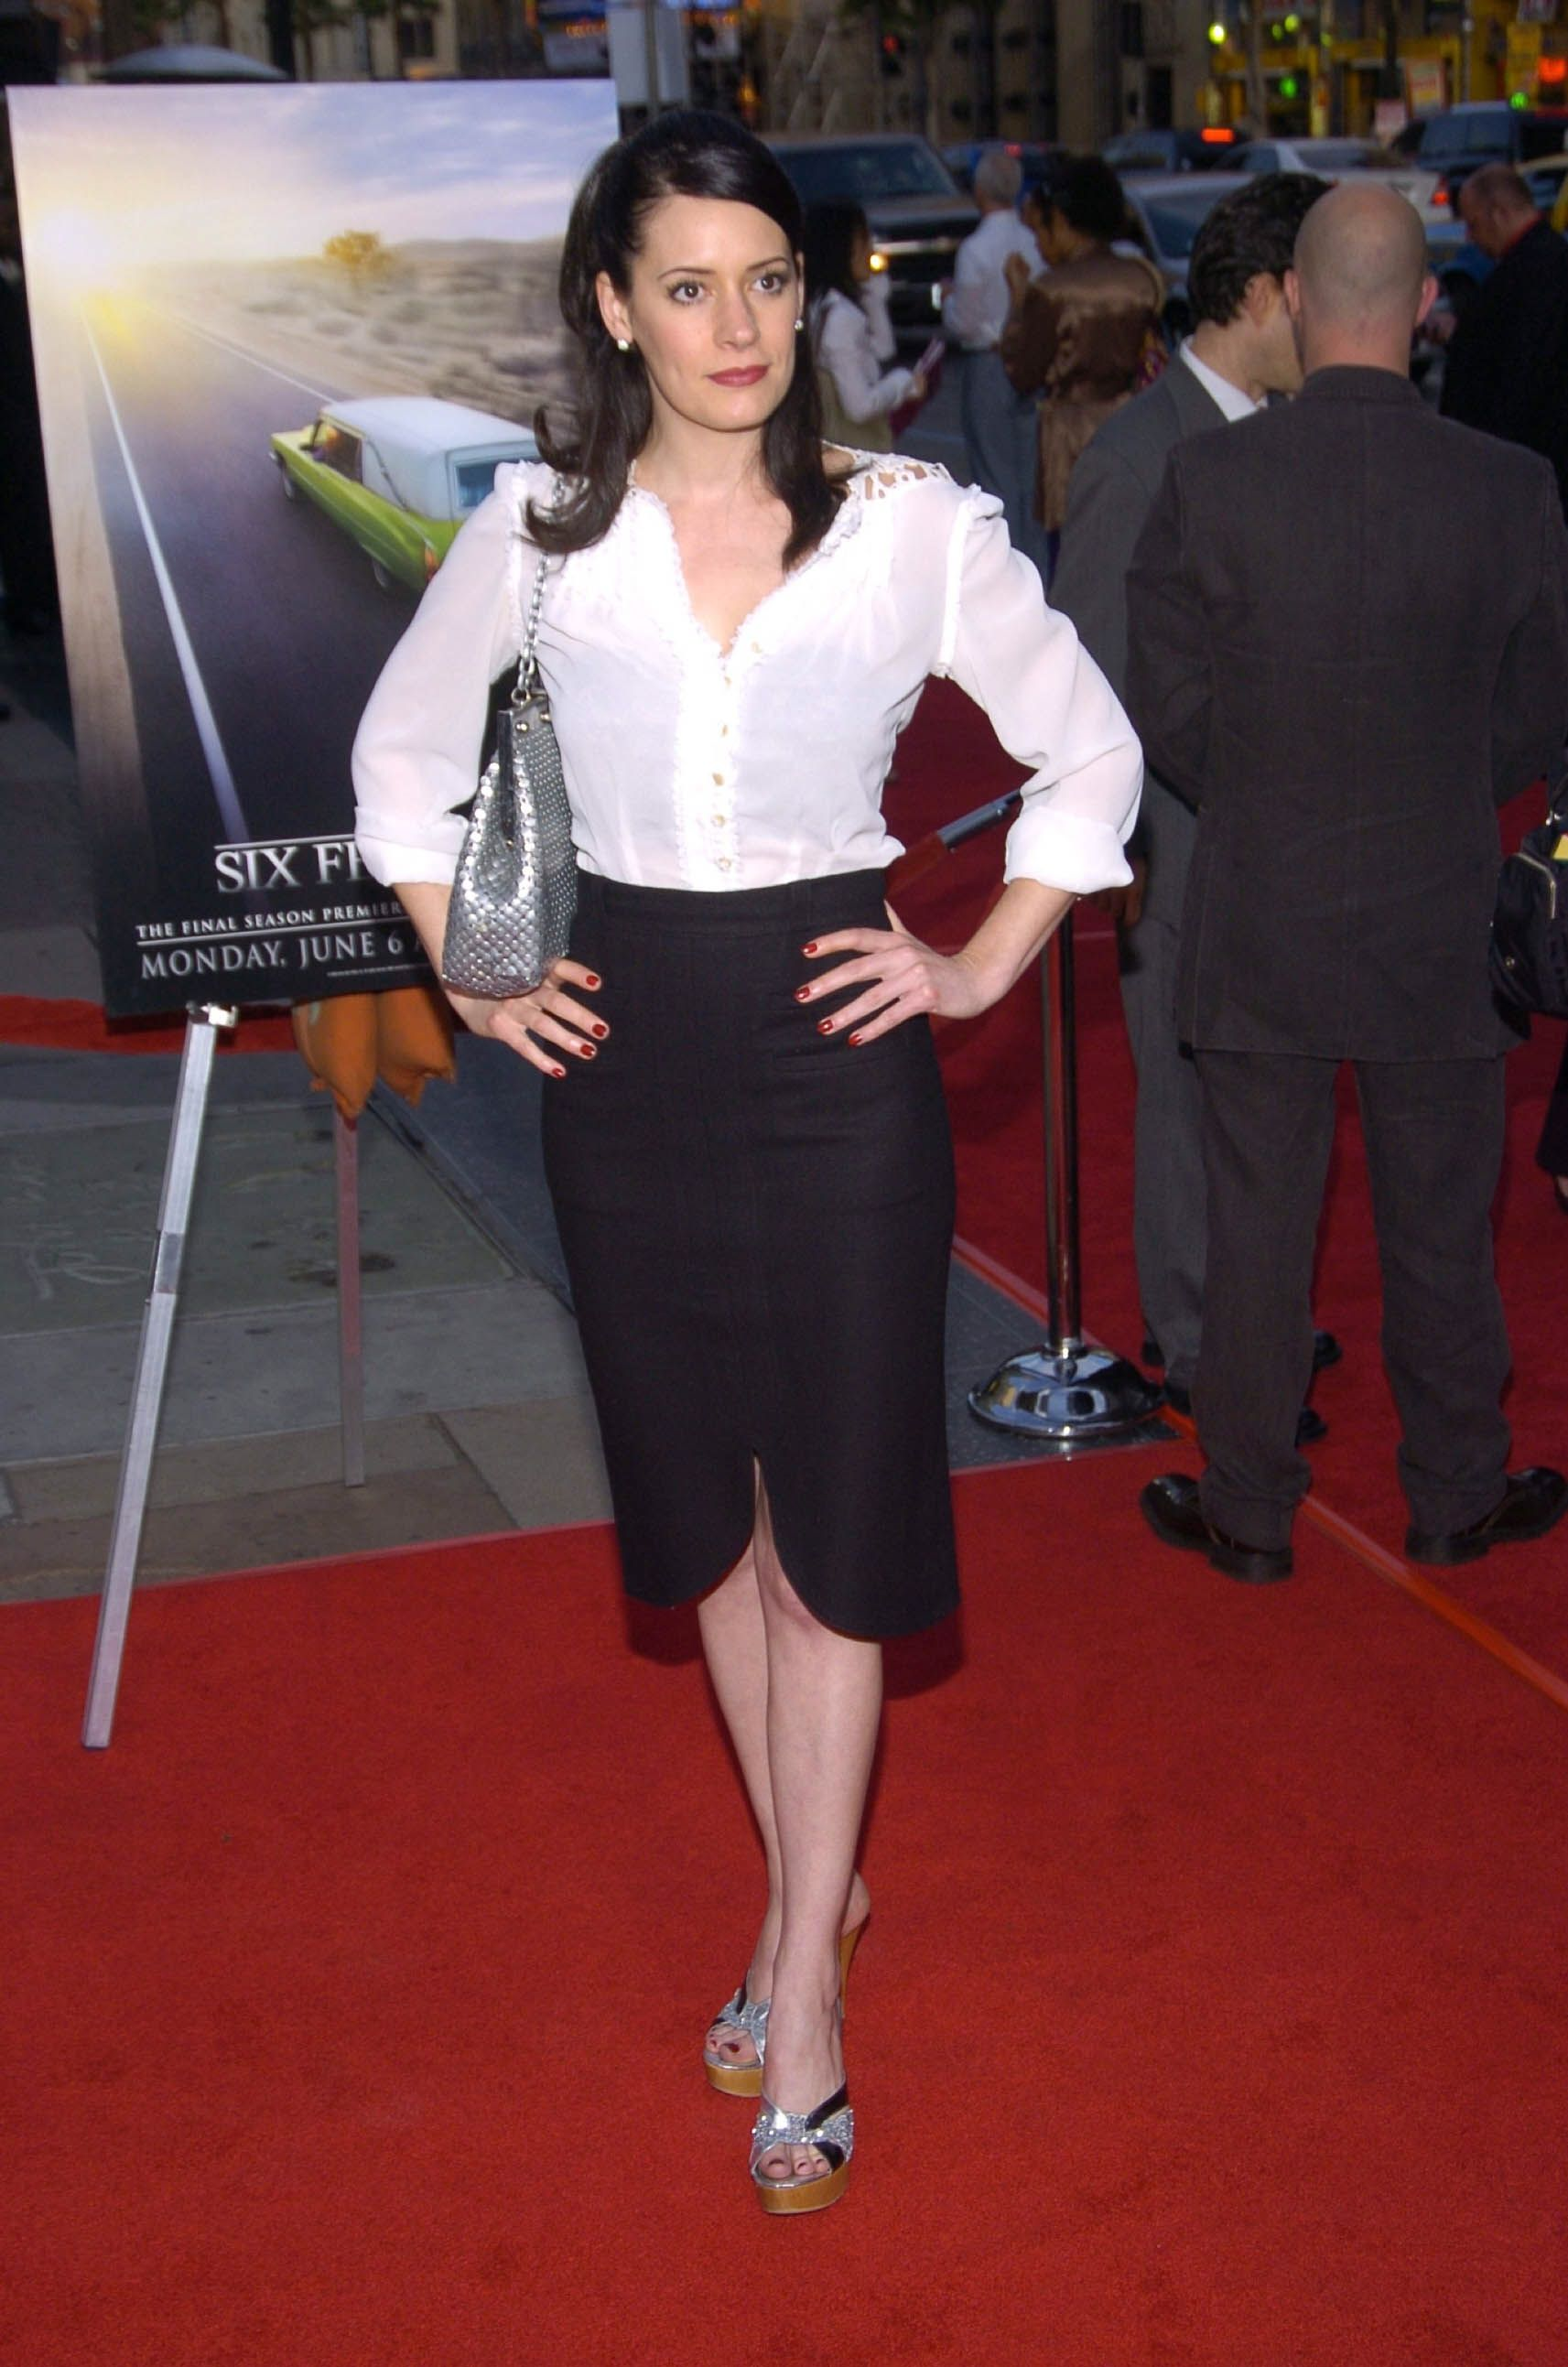 Paget Brewster A Red Carpet Event 4 Six Feet Under